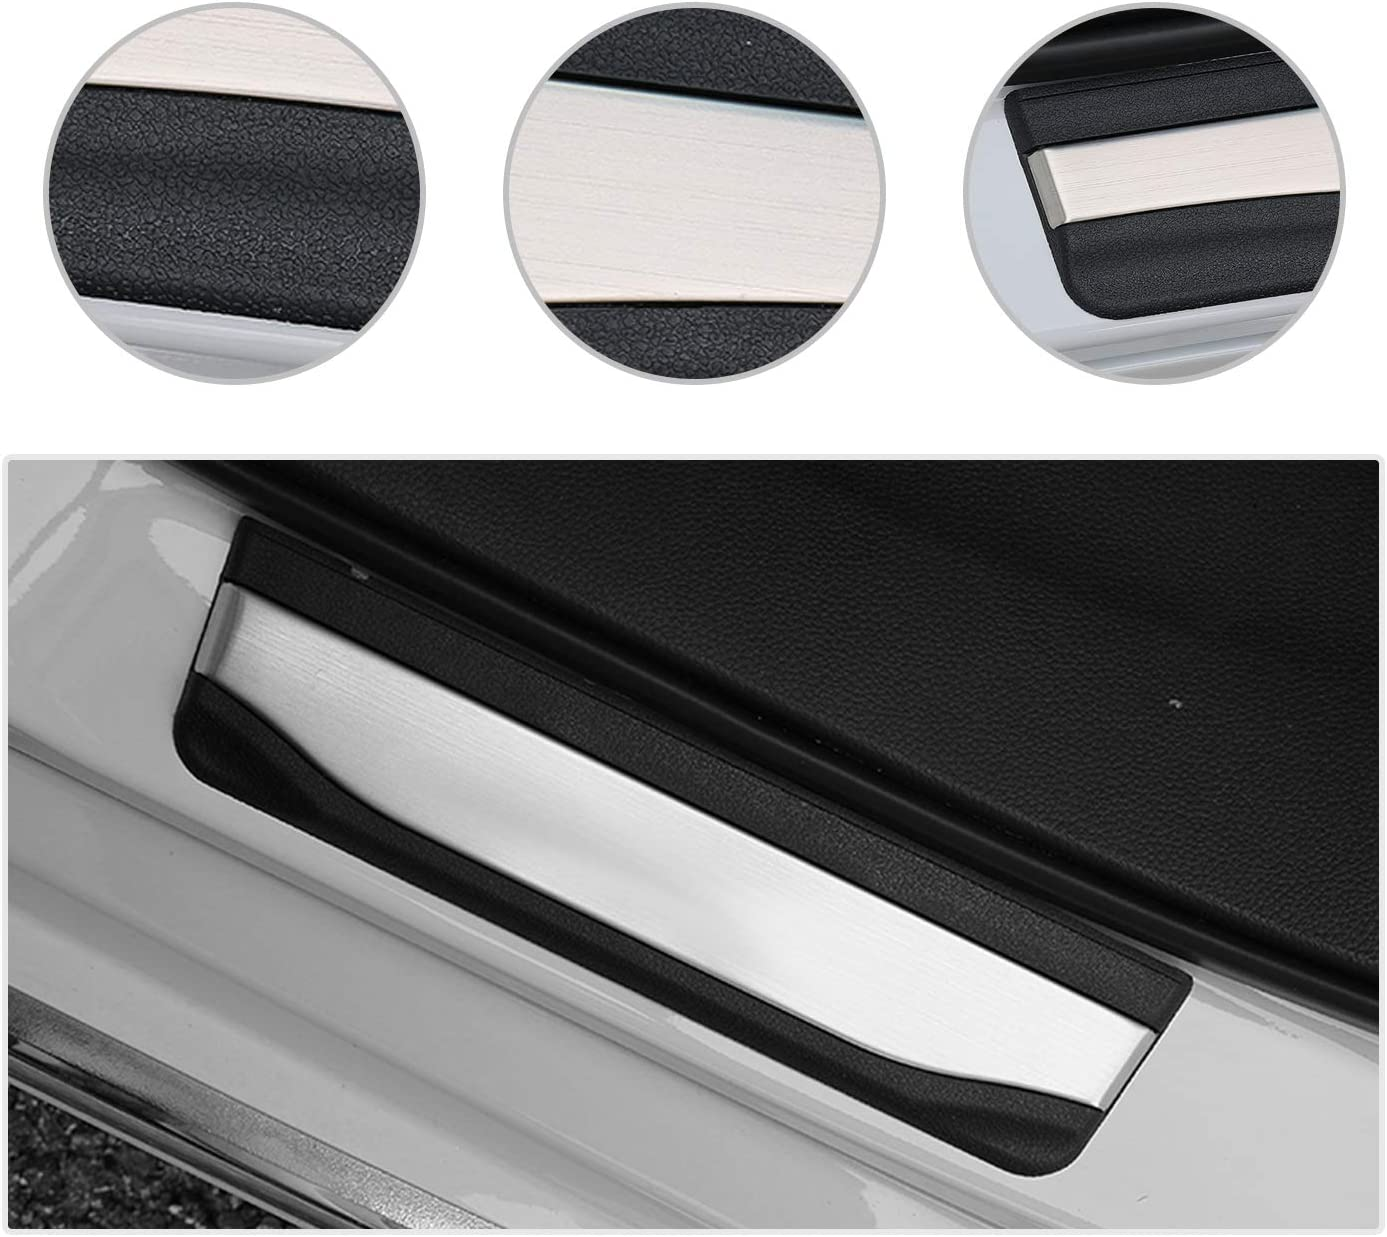 4PCS Car Door Sill Protector Door Sill Scuff Plates for Passport Pilot Insight Clarity, Door Entry Guard Cover Door Sill Protection Stainless Steel Scratch Resistance CDEFG